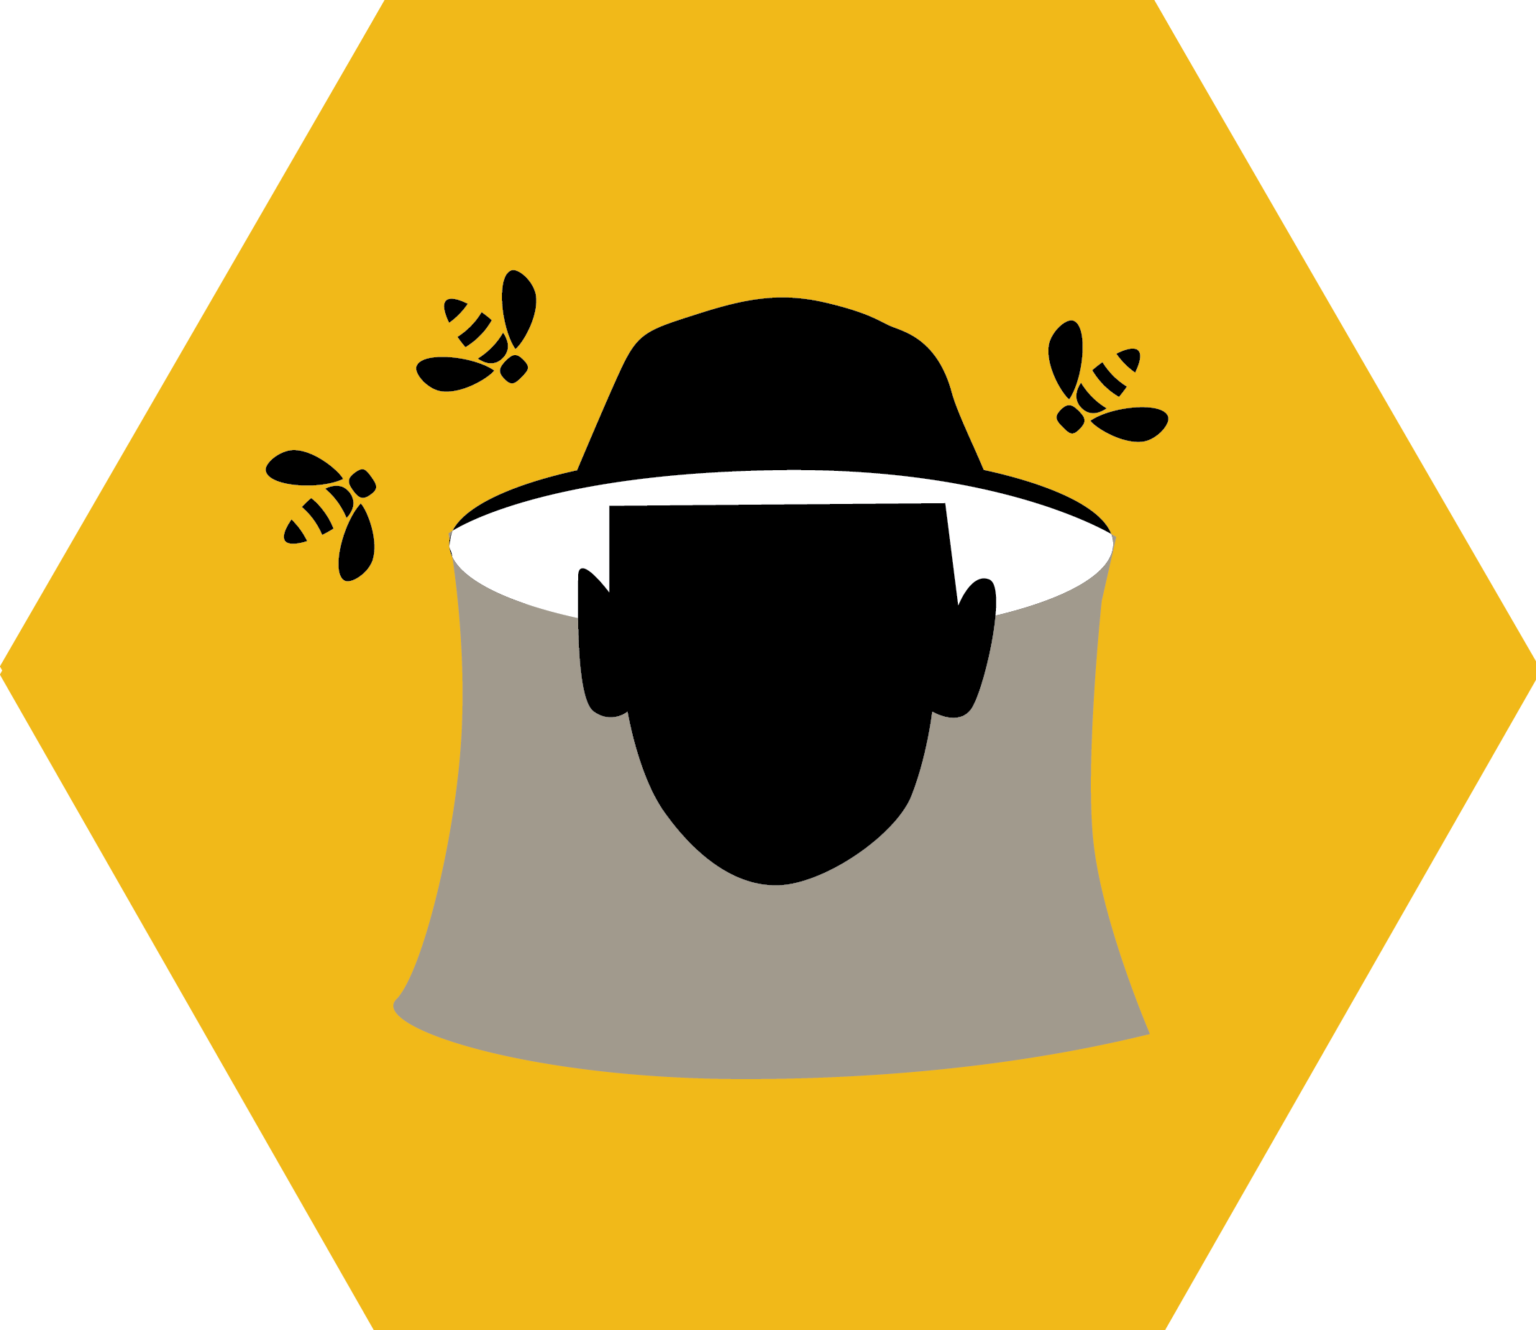 https://www.savethebee.org/wp-content/uploads/2021/08/beek-icon-1536x1330.png